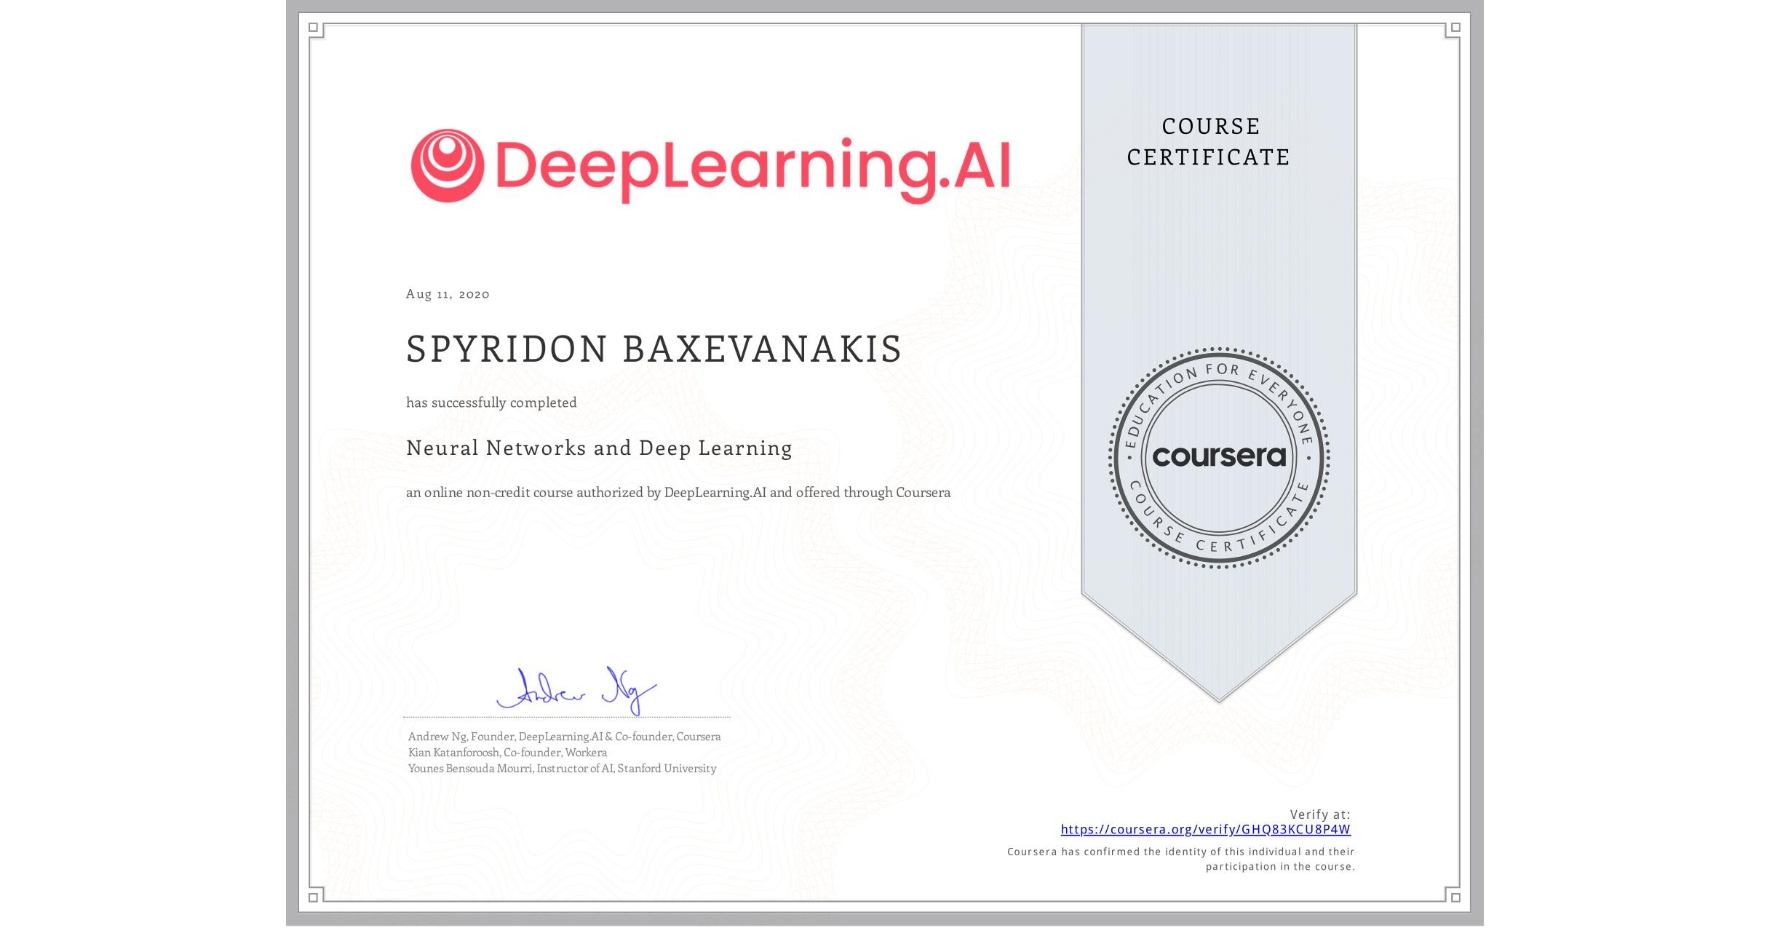 View certificate for SPYRIDON BAXEVANAKIS, Neural Networks and Deep Learning, an online non-credit course authorized by DeepLearning.AI and offered through Coursera